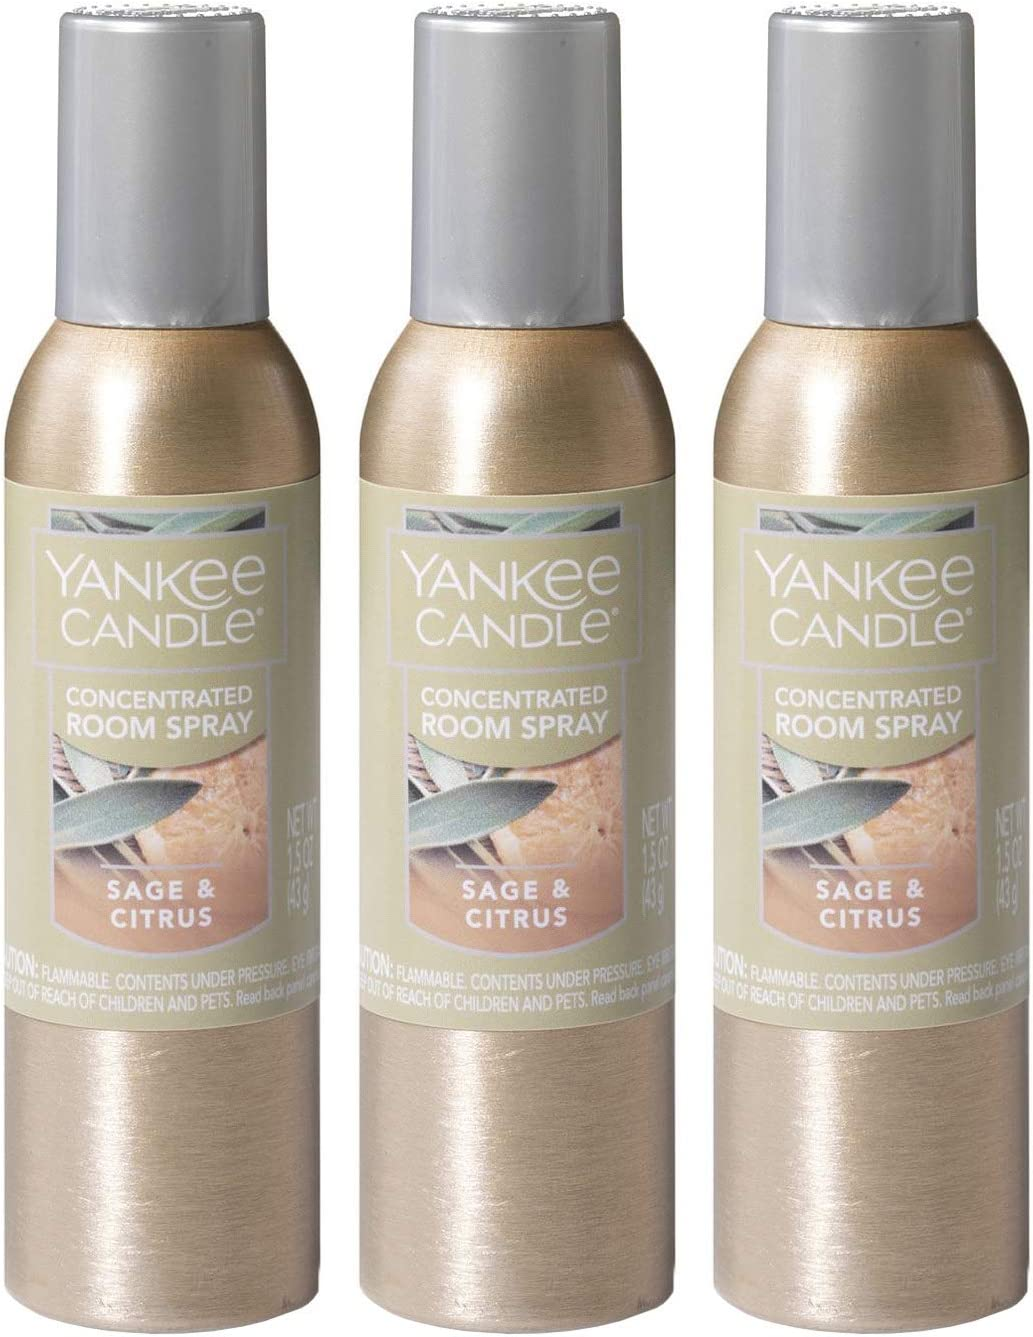 Yankee Candle Concentrated Room Spray 3-PACK (Sage & Citrus)